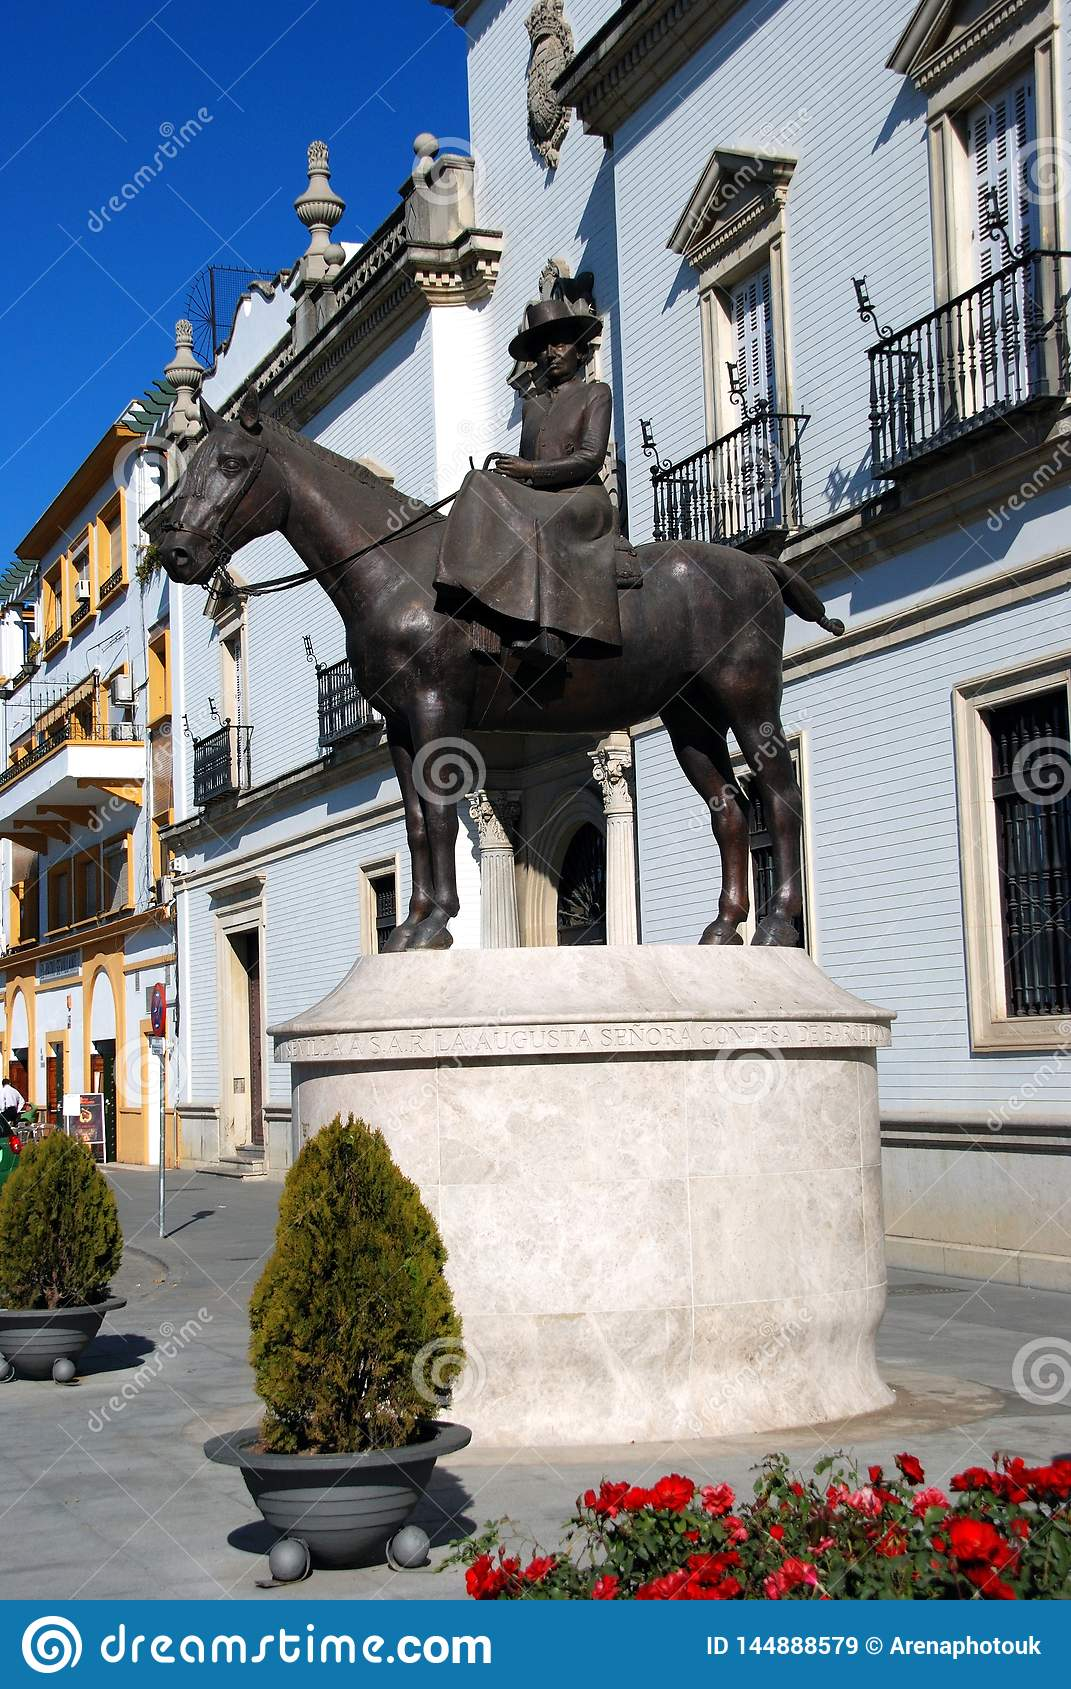 Countess of Barcelona statue, Seville, Spain.